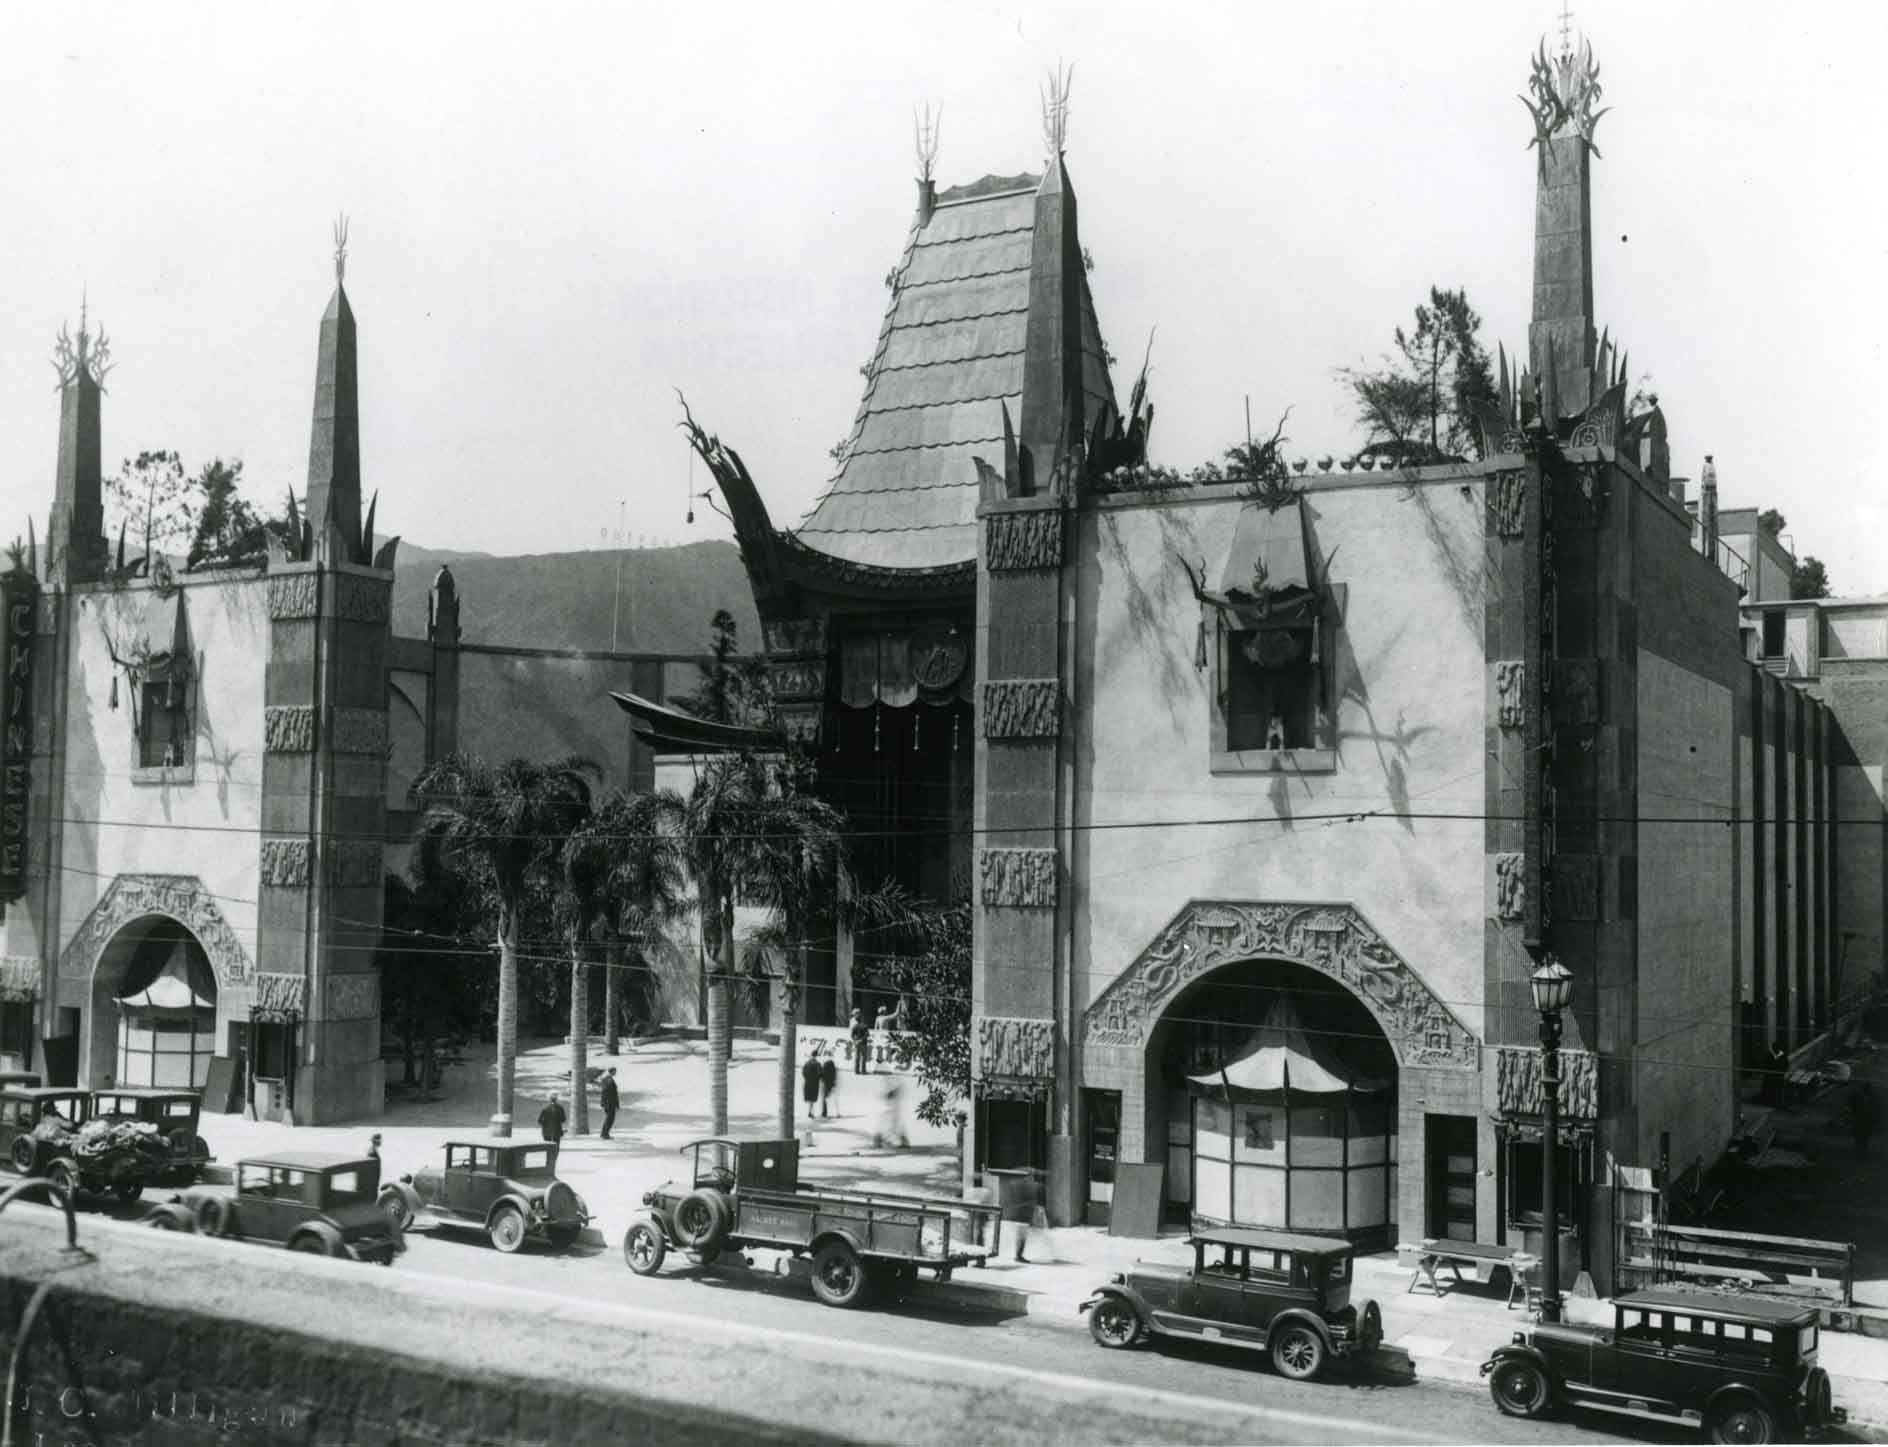 Early photo of Grumman's Chinese Theater